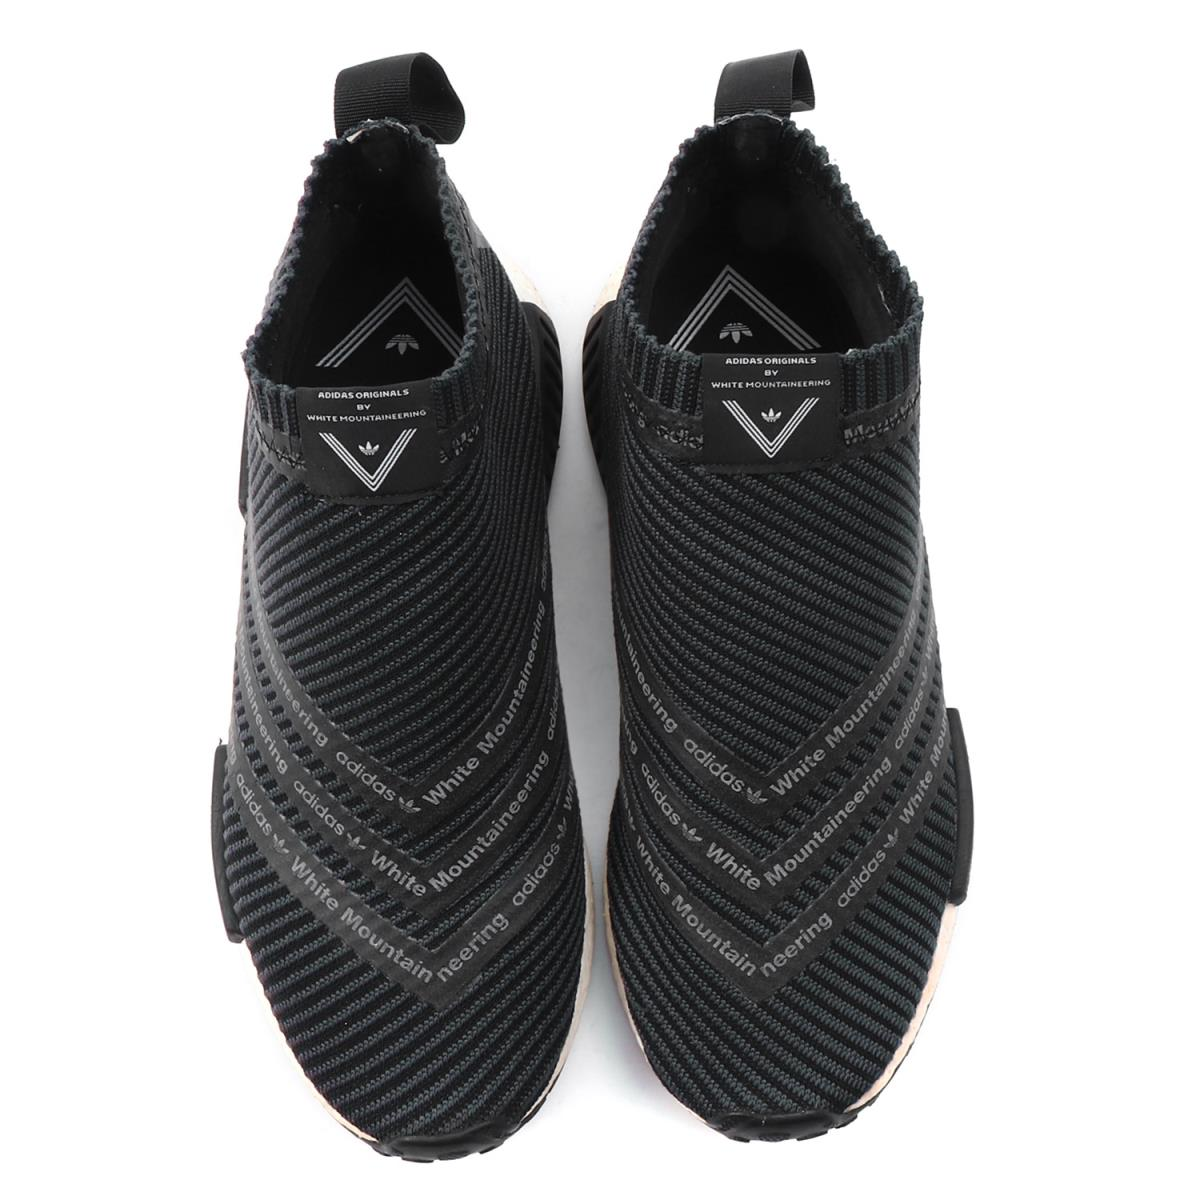 10ad6695d White Mountaineering (ホワイトマウンテニアリング) 16A W X adidas WM NMD CITY SOCK (S80529)  black US8(26cm)